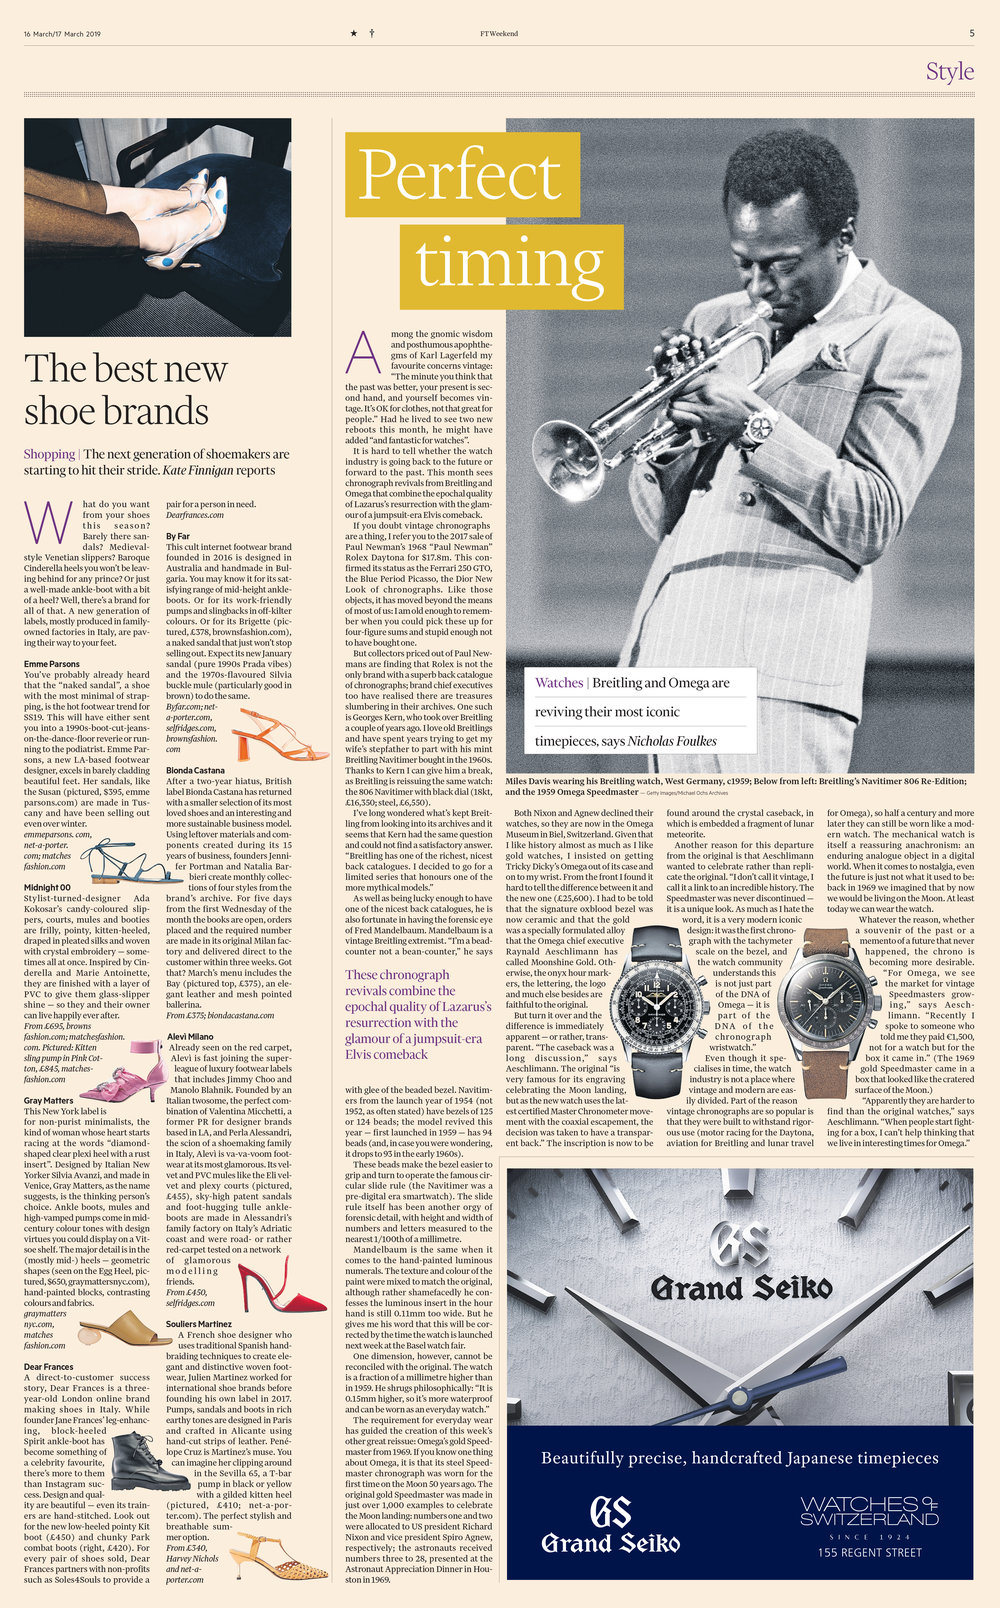 FT_L&A_Style_The best new shoe brands_Kate Finnigan_16 March 2019_p5.jpg